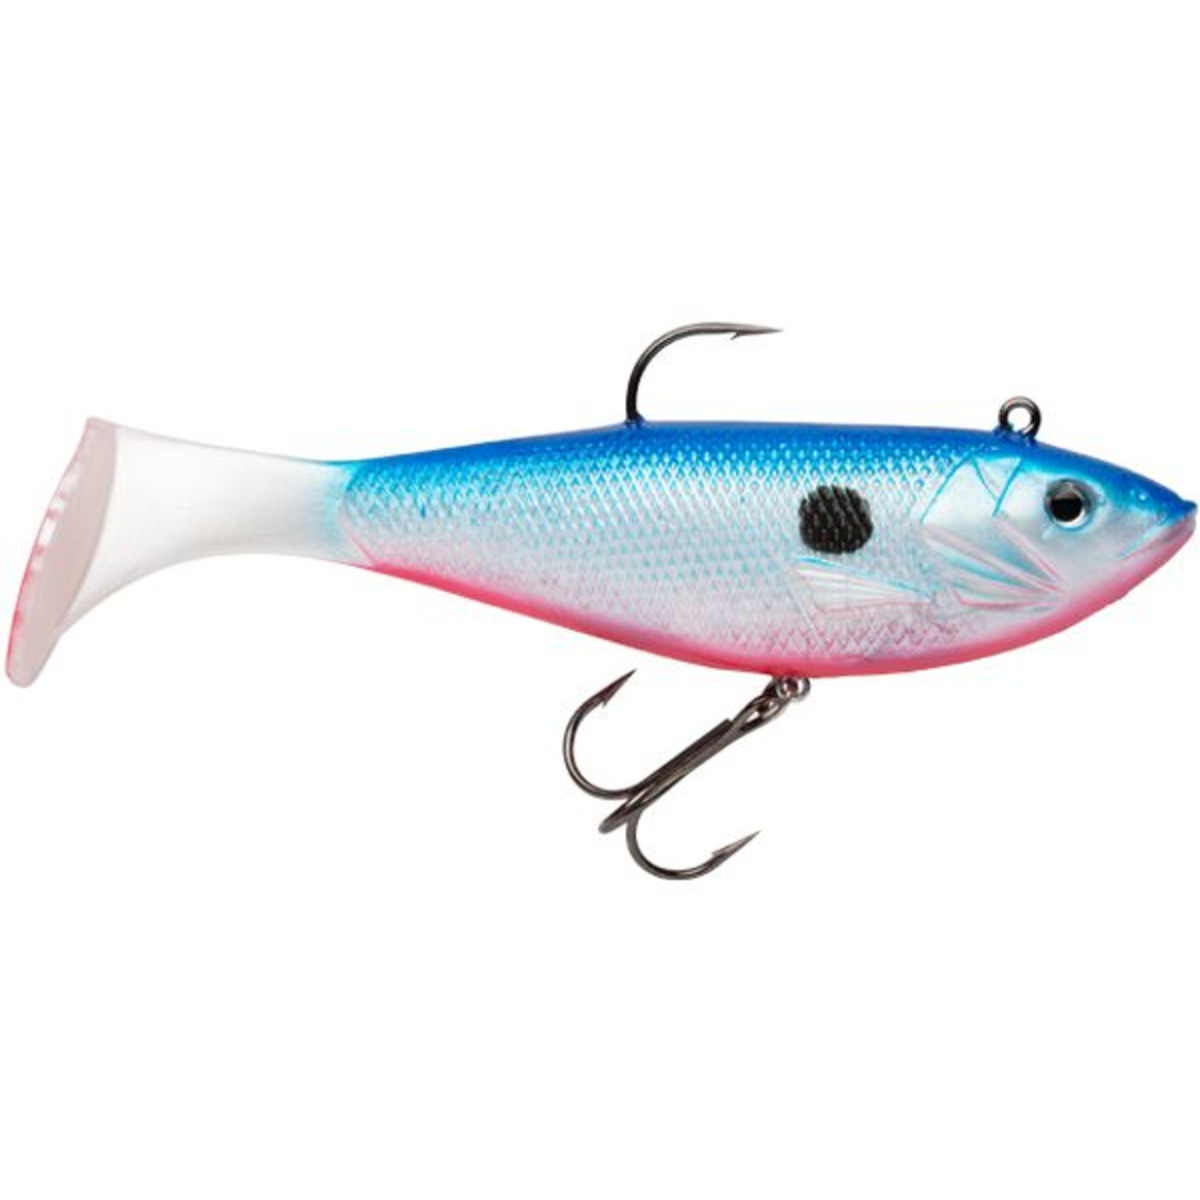 Storm Suspending Wild Tail Shad - 15 cm - 44 g - Red Belly Shad